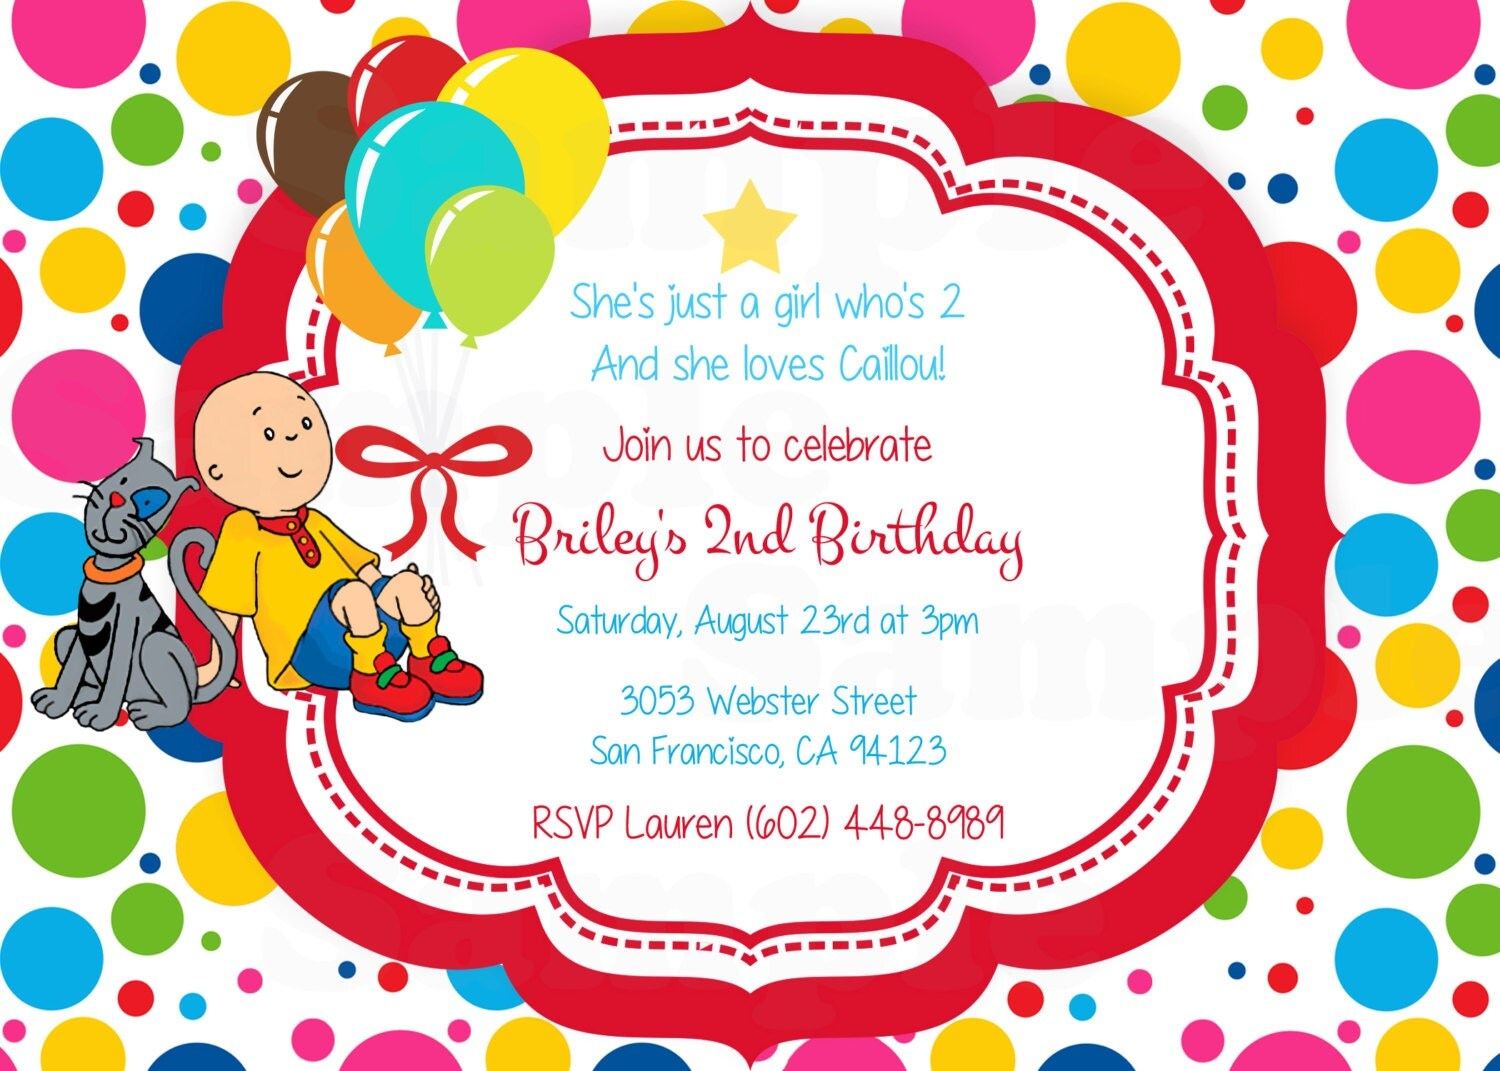 Caillou Theme Inspired Digital Invitation Favor Tags in Red